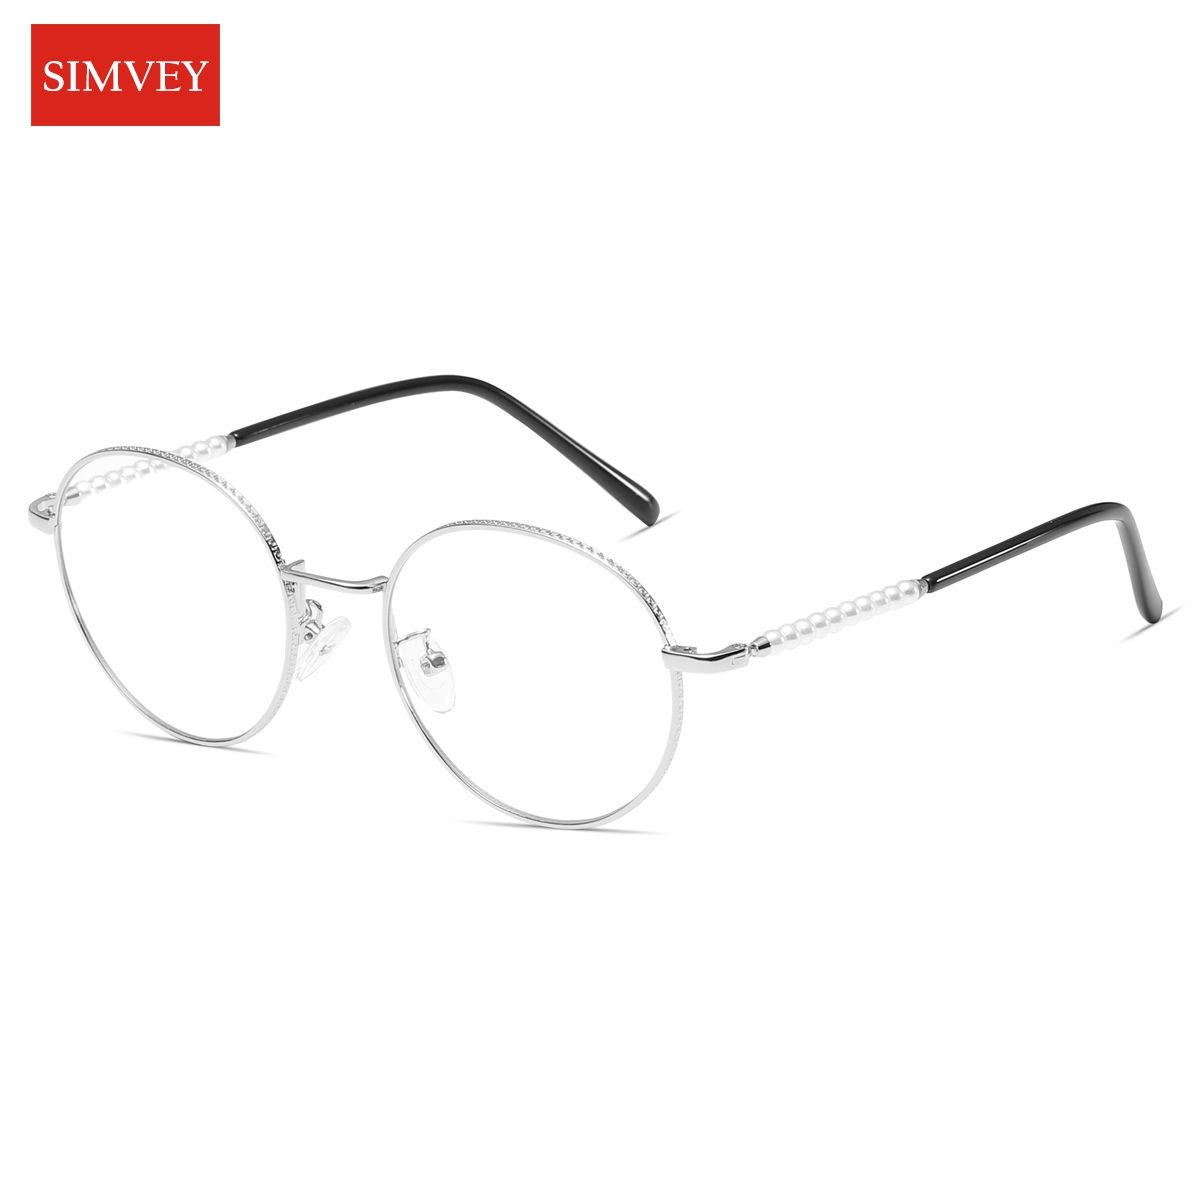 381ae7459e Simvey 2017 Fashion Computer Glasses Women Blue Light Blocking Glasses  Metal Frame Gaming Glasses With Pearl